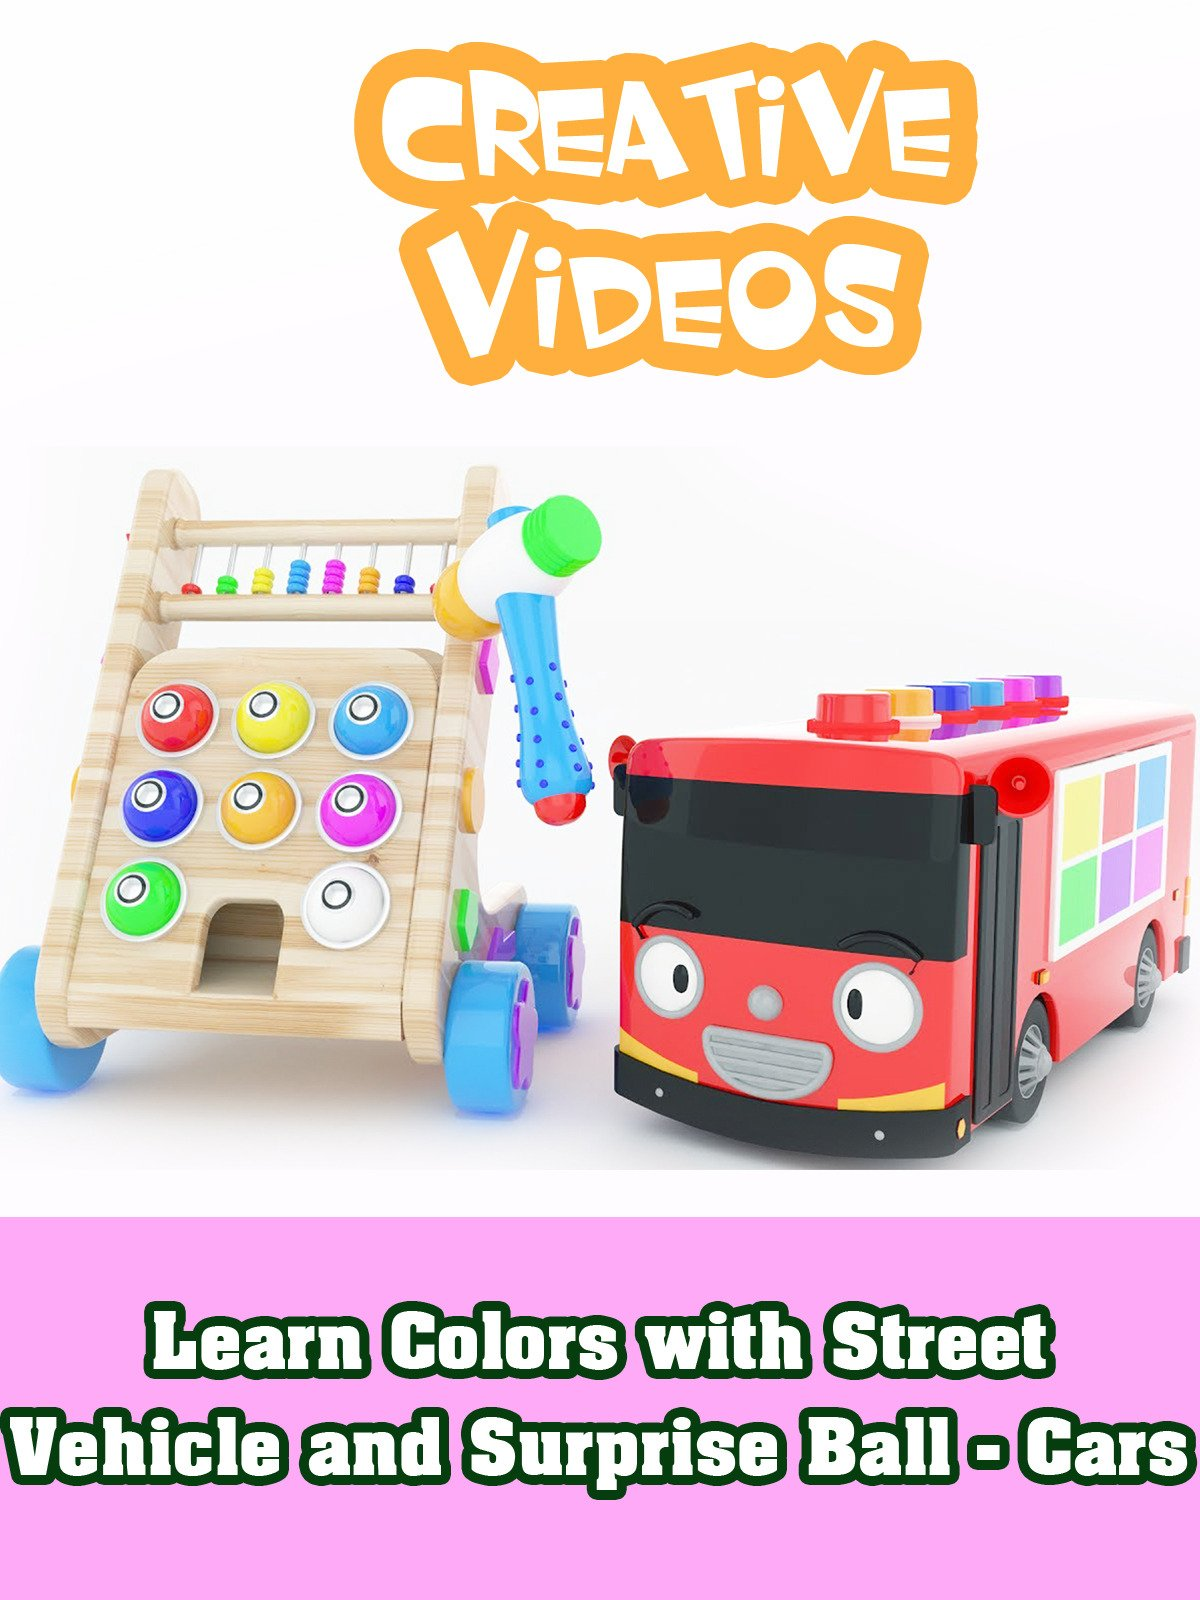 Learn Colors with Street Vehicle and Surprise Ball